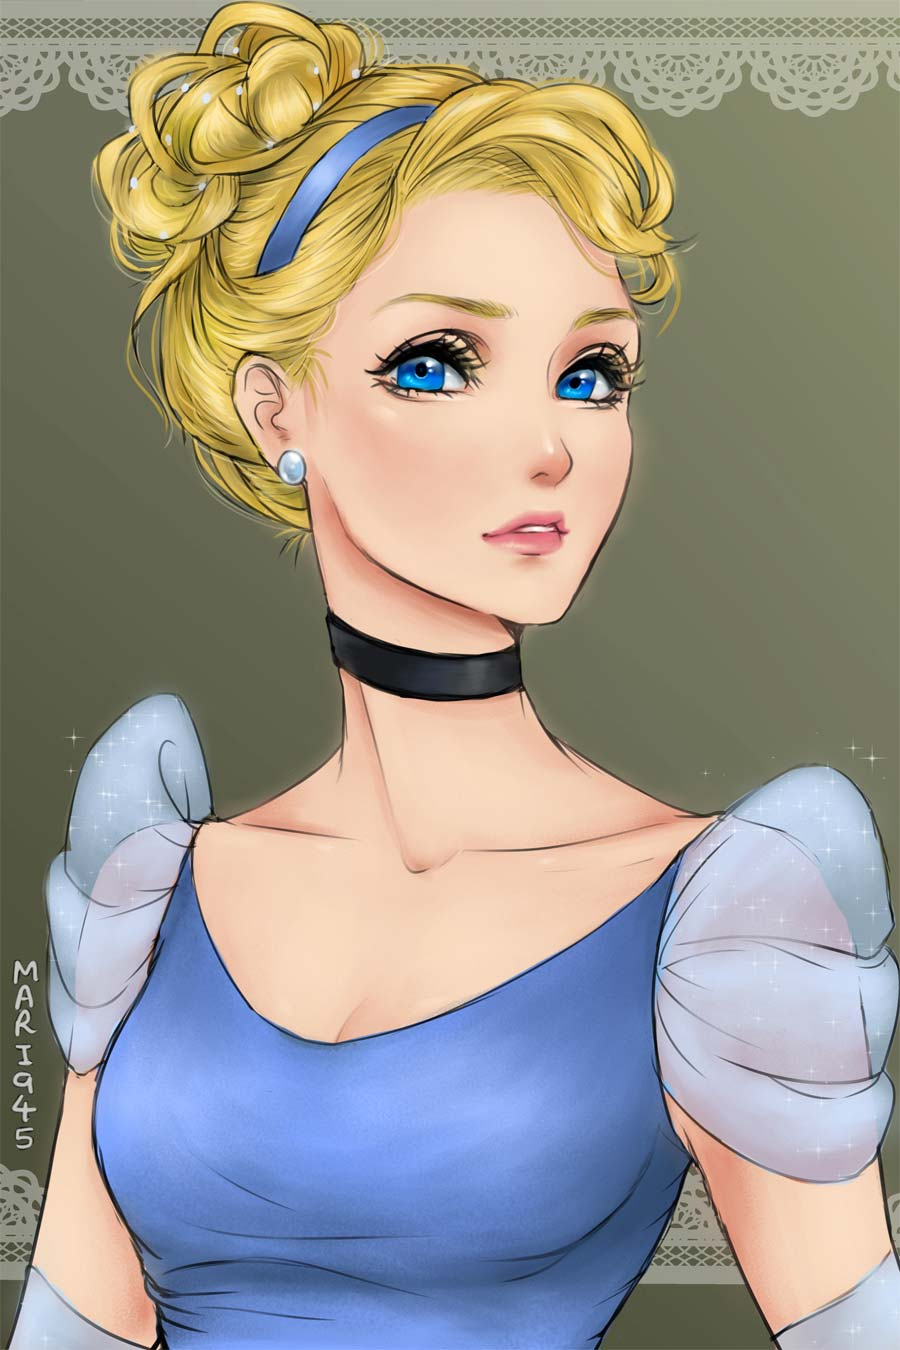 disney-ilustracao-princesas-retratos-animes-004